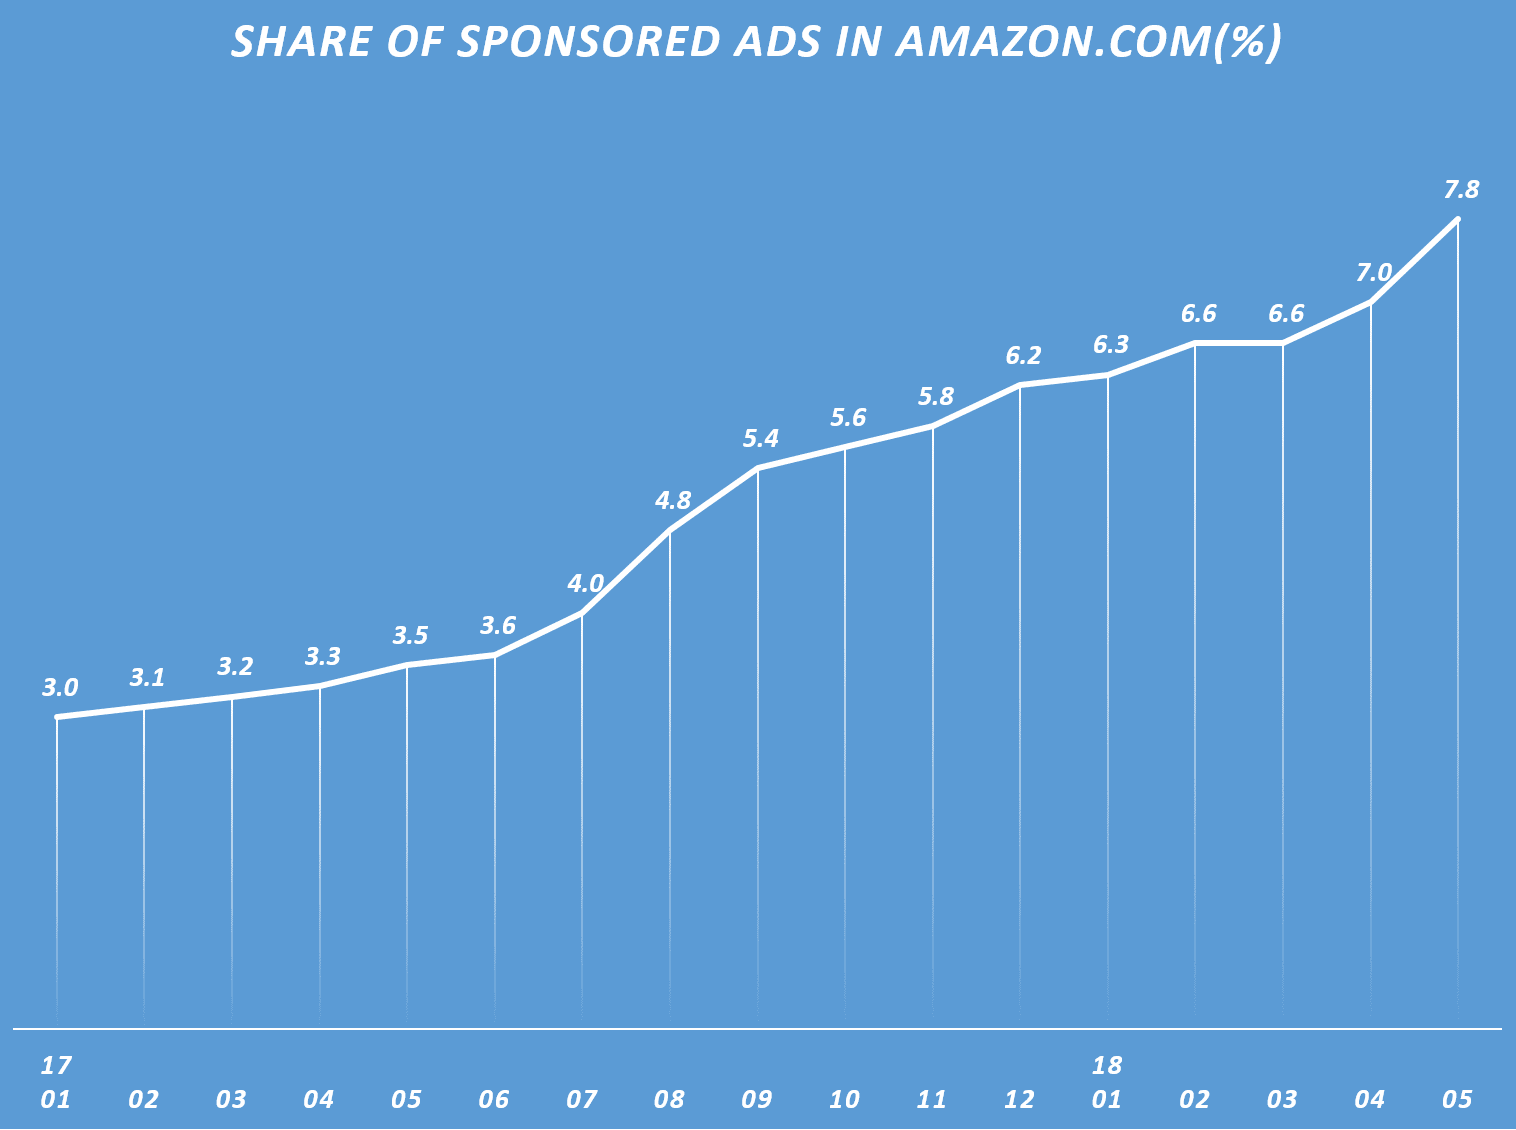 아마존 페이지뷰에서 스폰서 광고가 차지하는 비중 추이, Share of Amazon product page views that came from sponsored ads, Data by Jumpshot & Graph by Happist